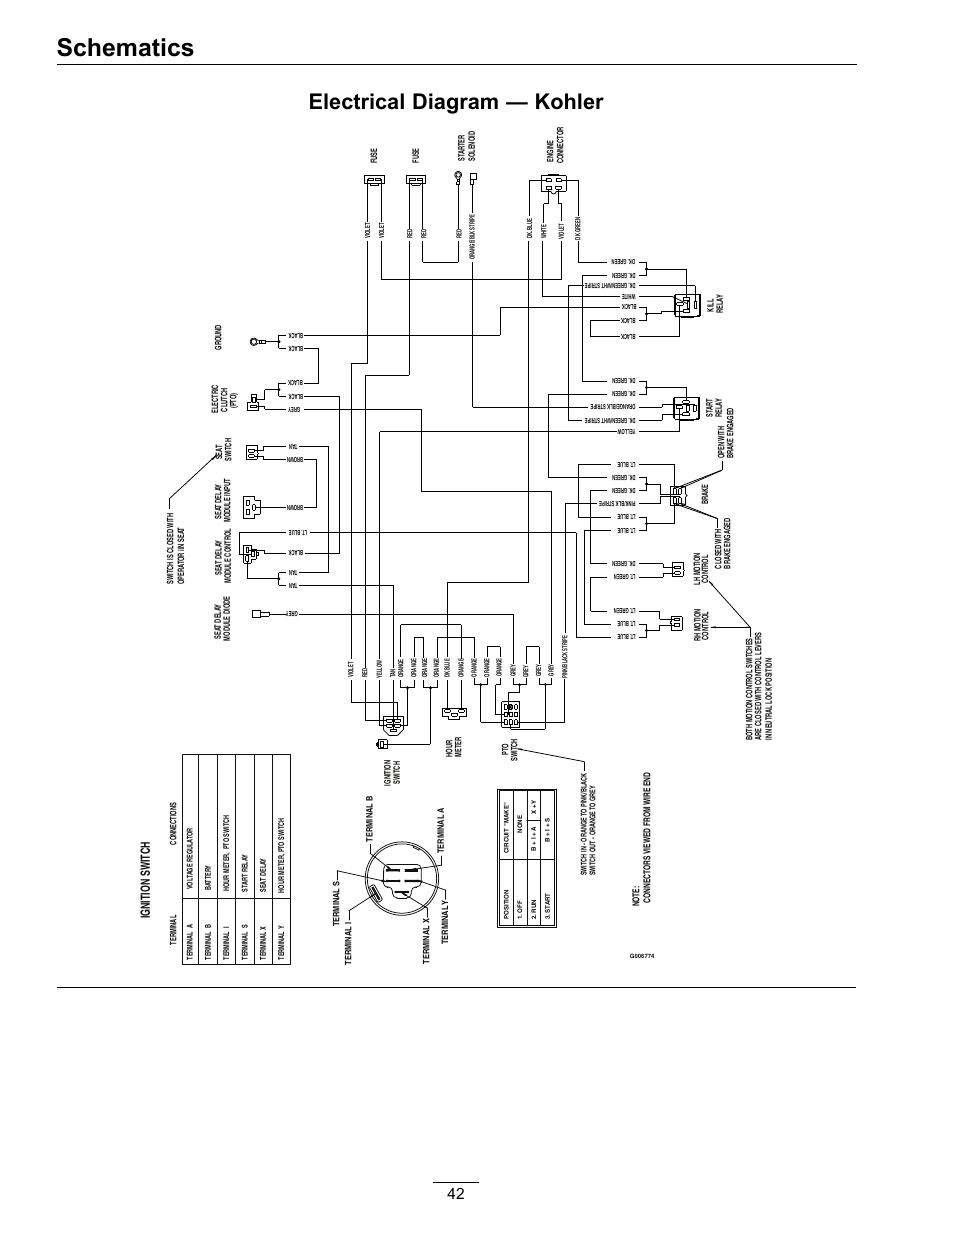 exmark lazer z wiring schematic | free wiring diagram 1963 impala engine wiring diagram free download